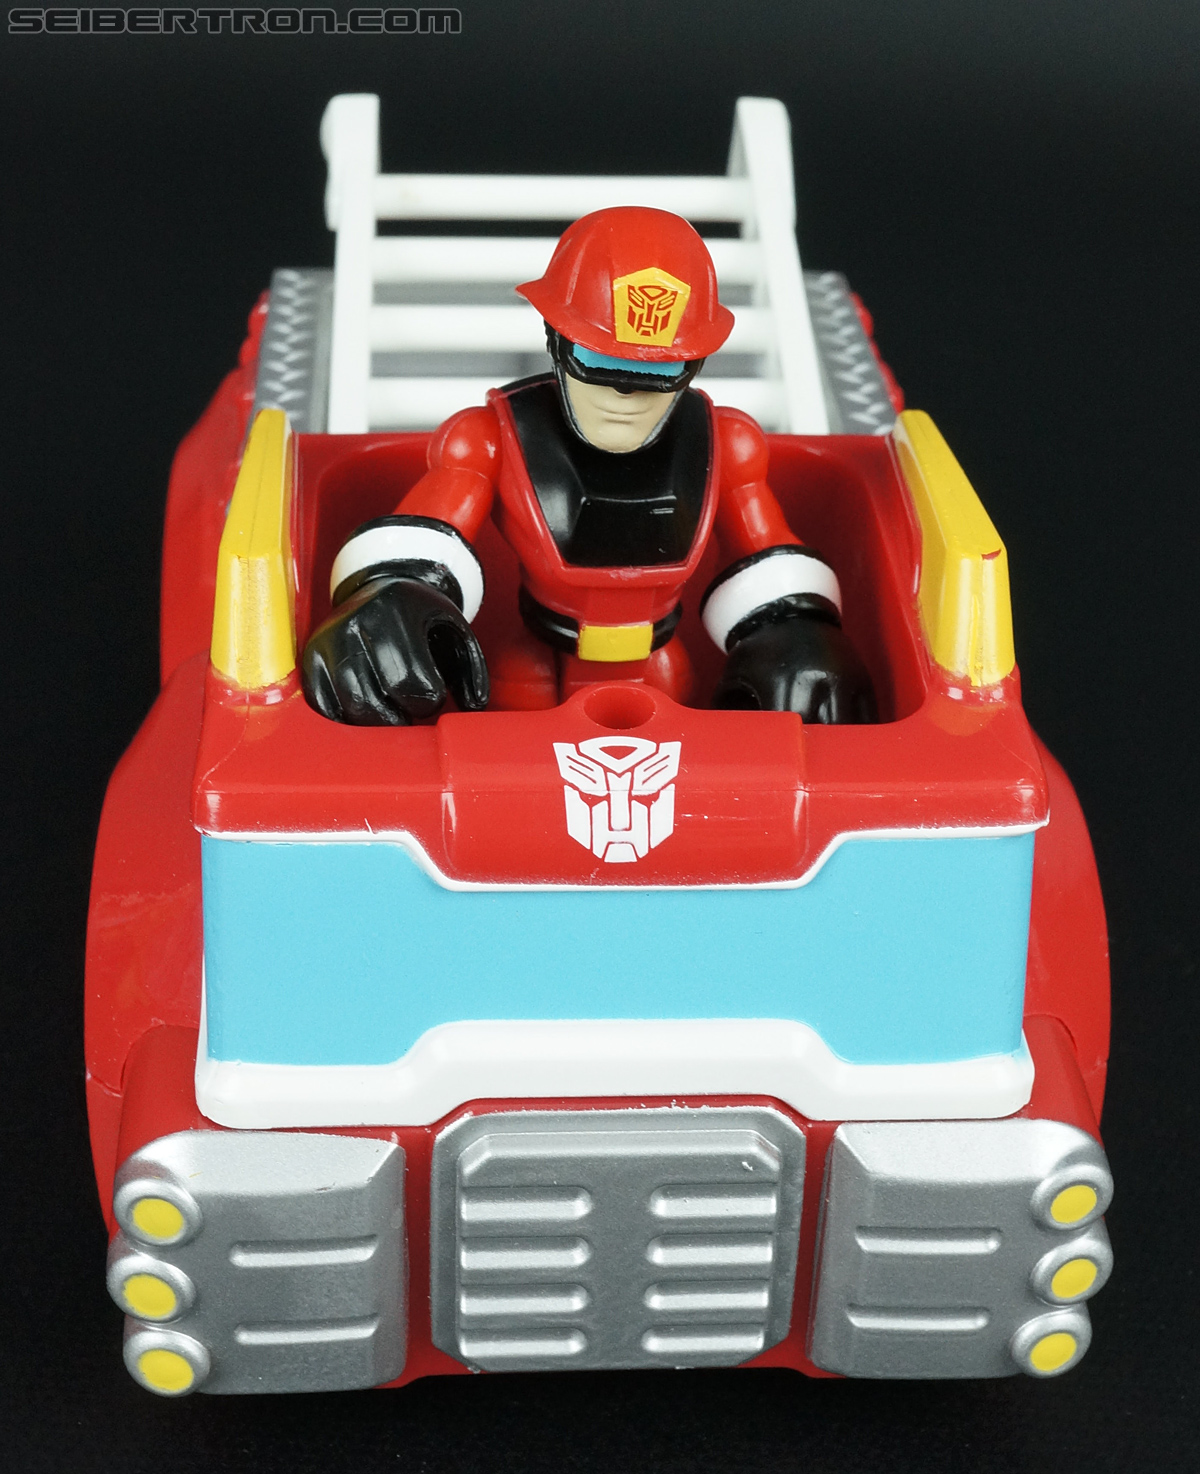 Transformers Rescue Bots Heatwave the Fire-Bot (Fire Station Prime) (Image #13 of 64)